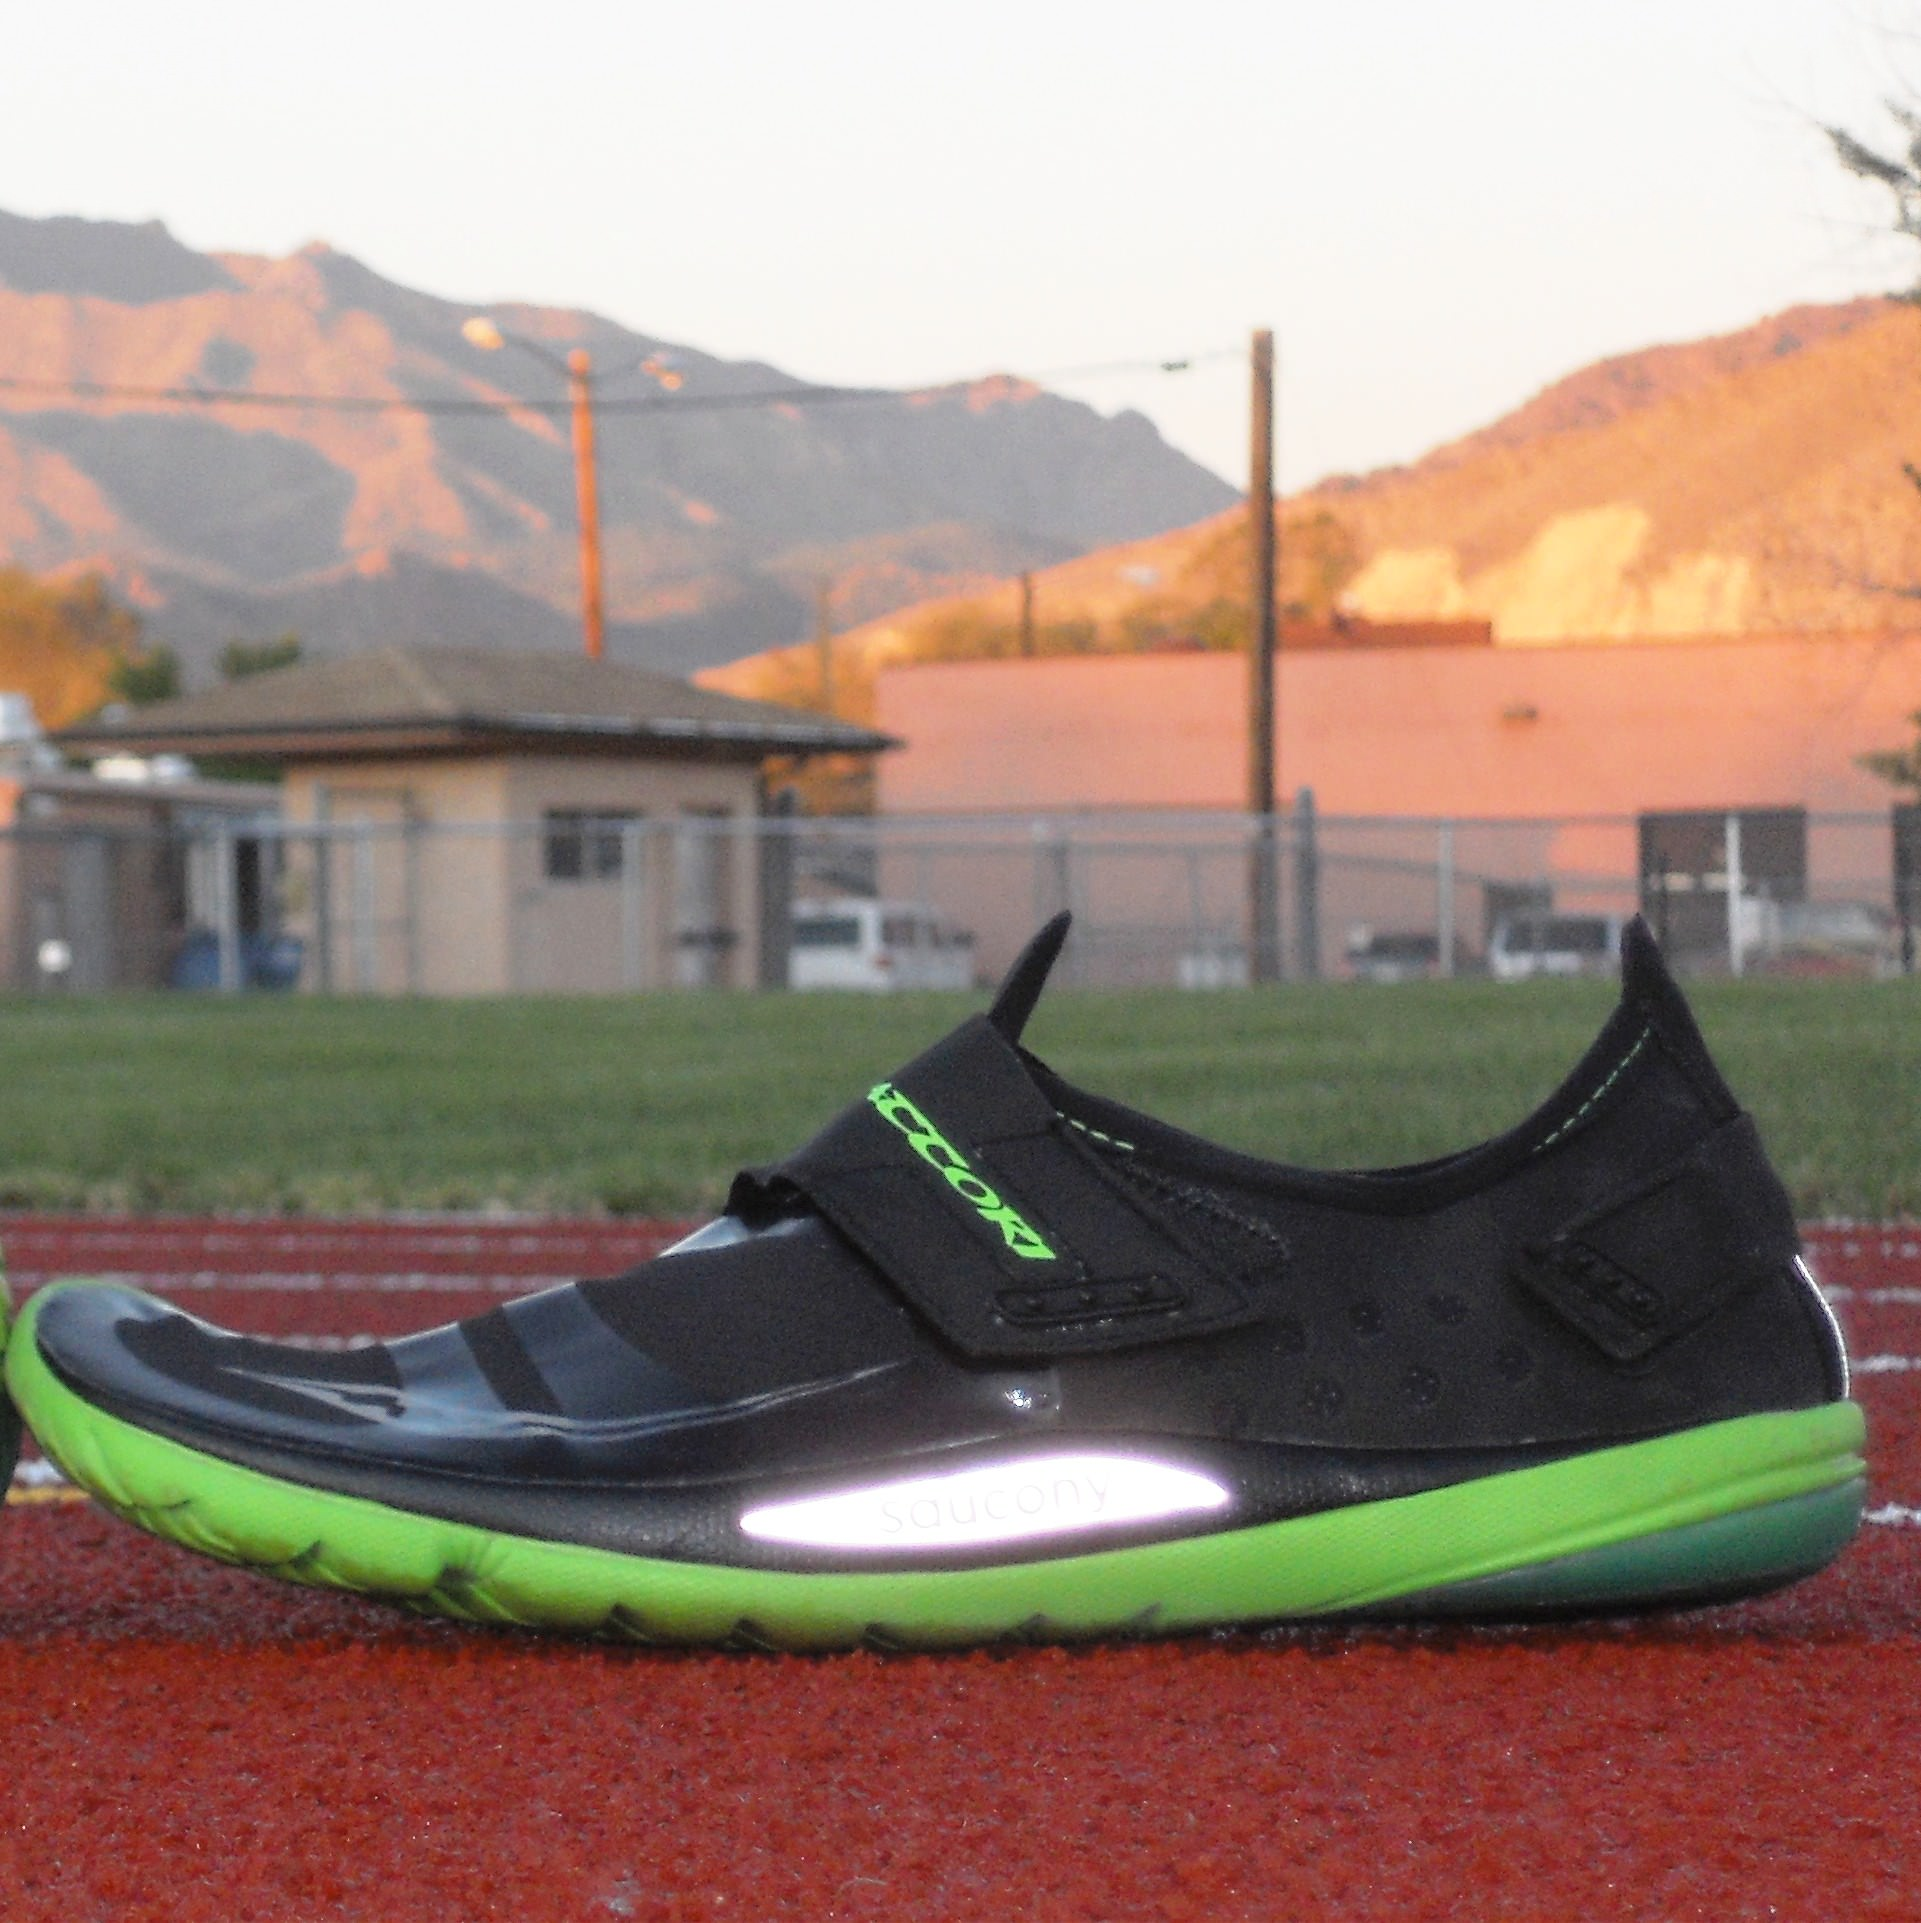 Saucony Hattori Running Shoes Review  44f2e9f07a4